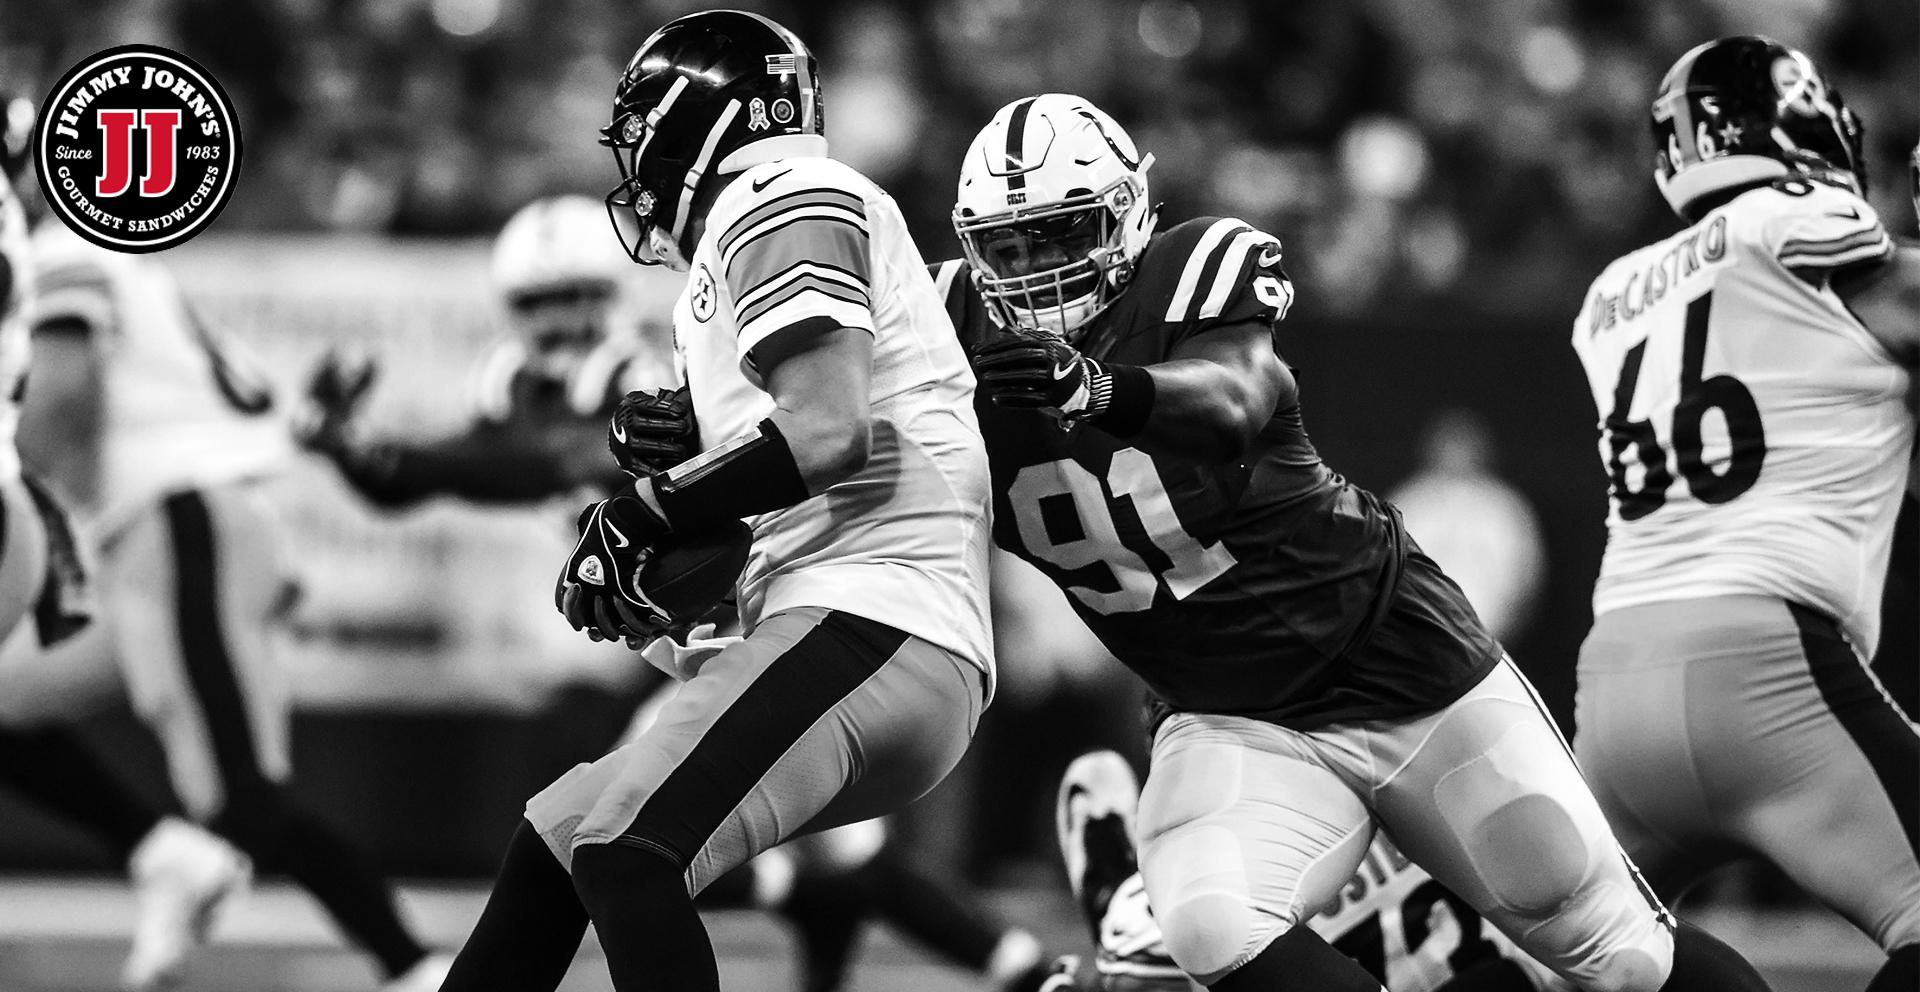 [PHOTOS] Tuesday's Top 10 - Colts vs Steelers